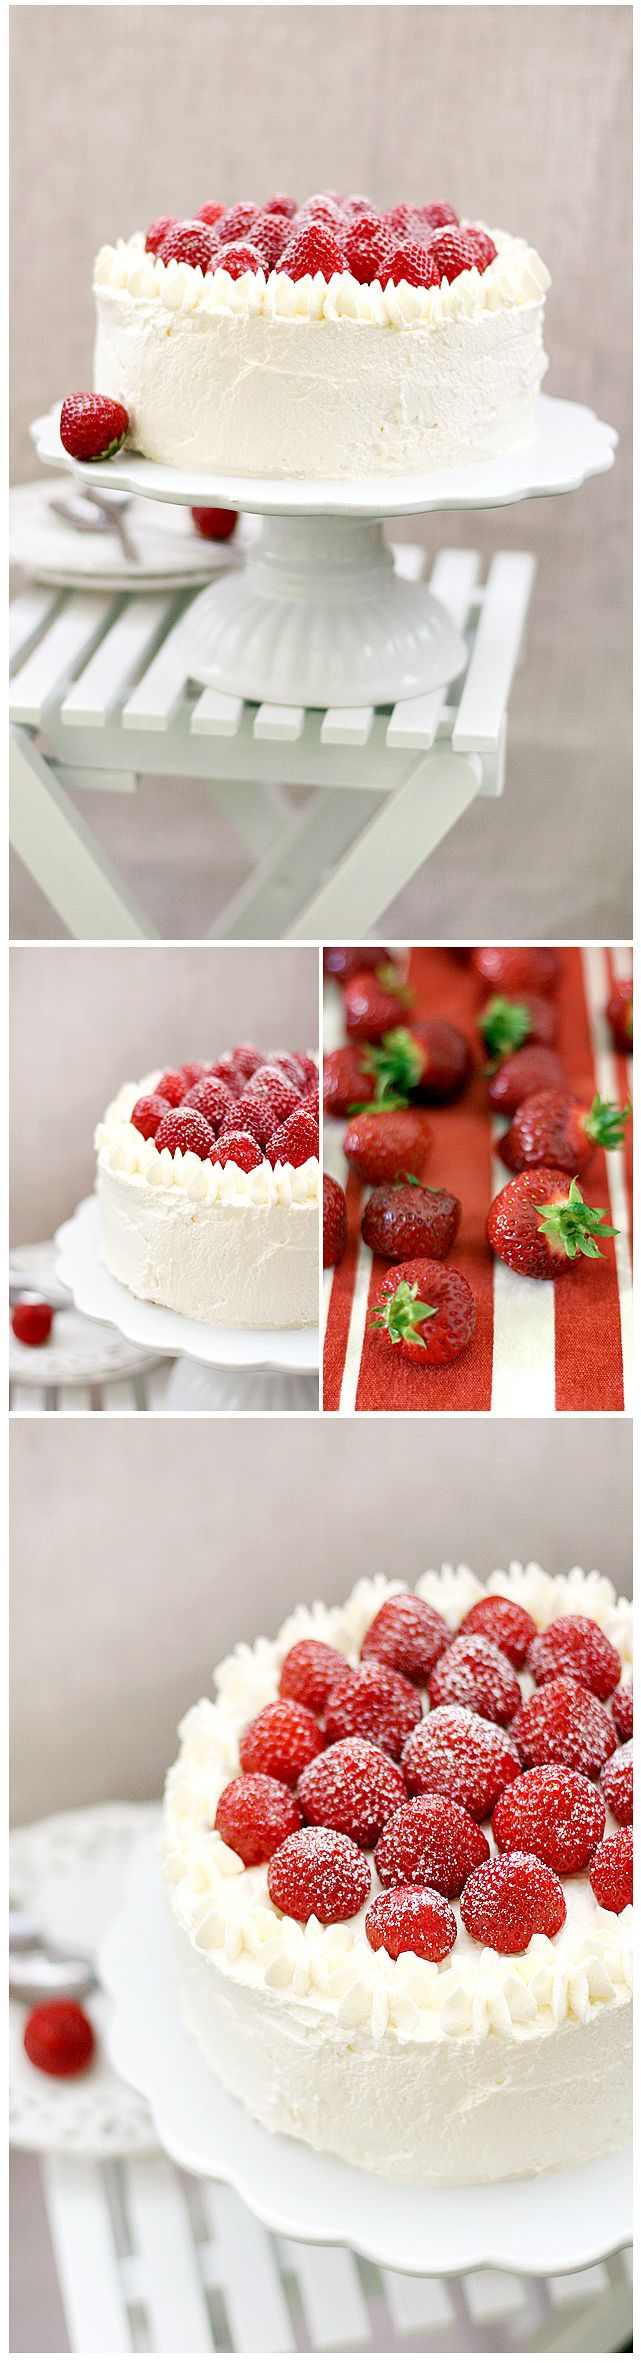 A decorating idea for a simple white cake.  Pretty!